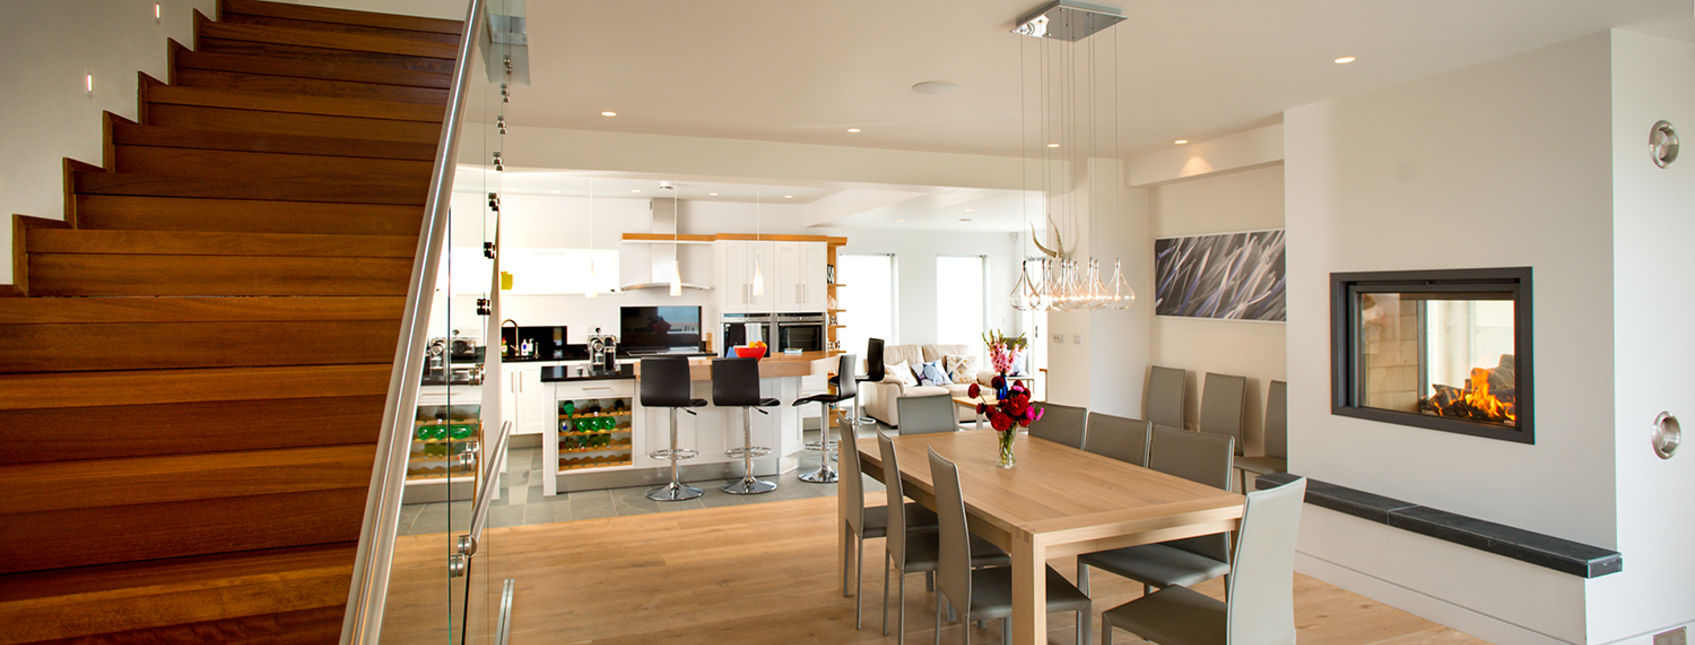 Engineered oak floorboards in contemporary kitchen (Photographer - Bob Willingham)